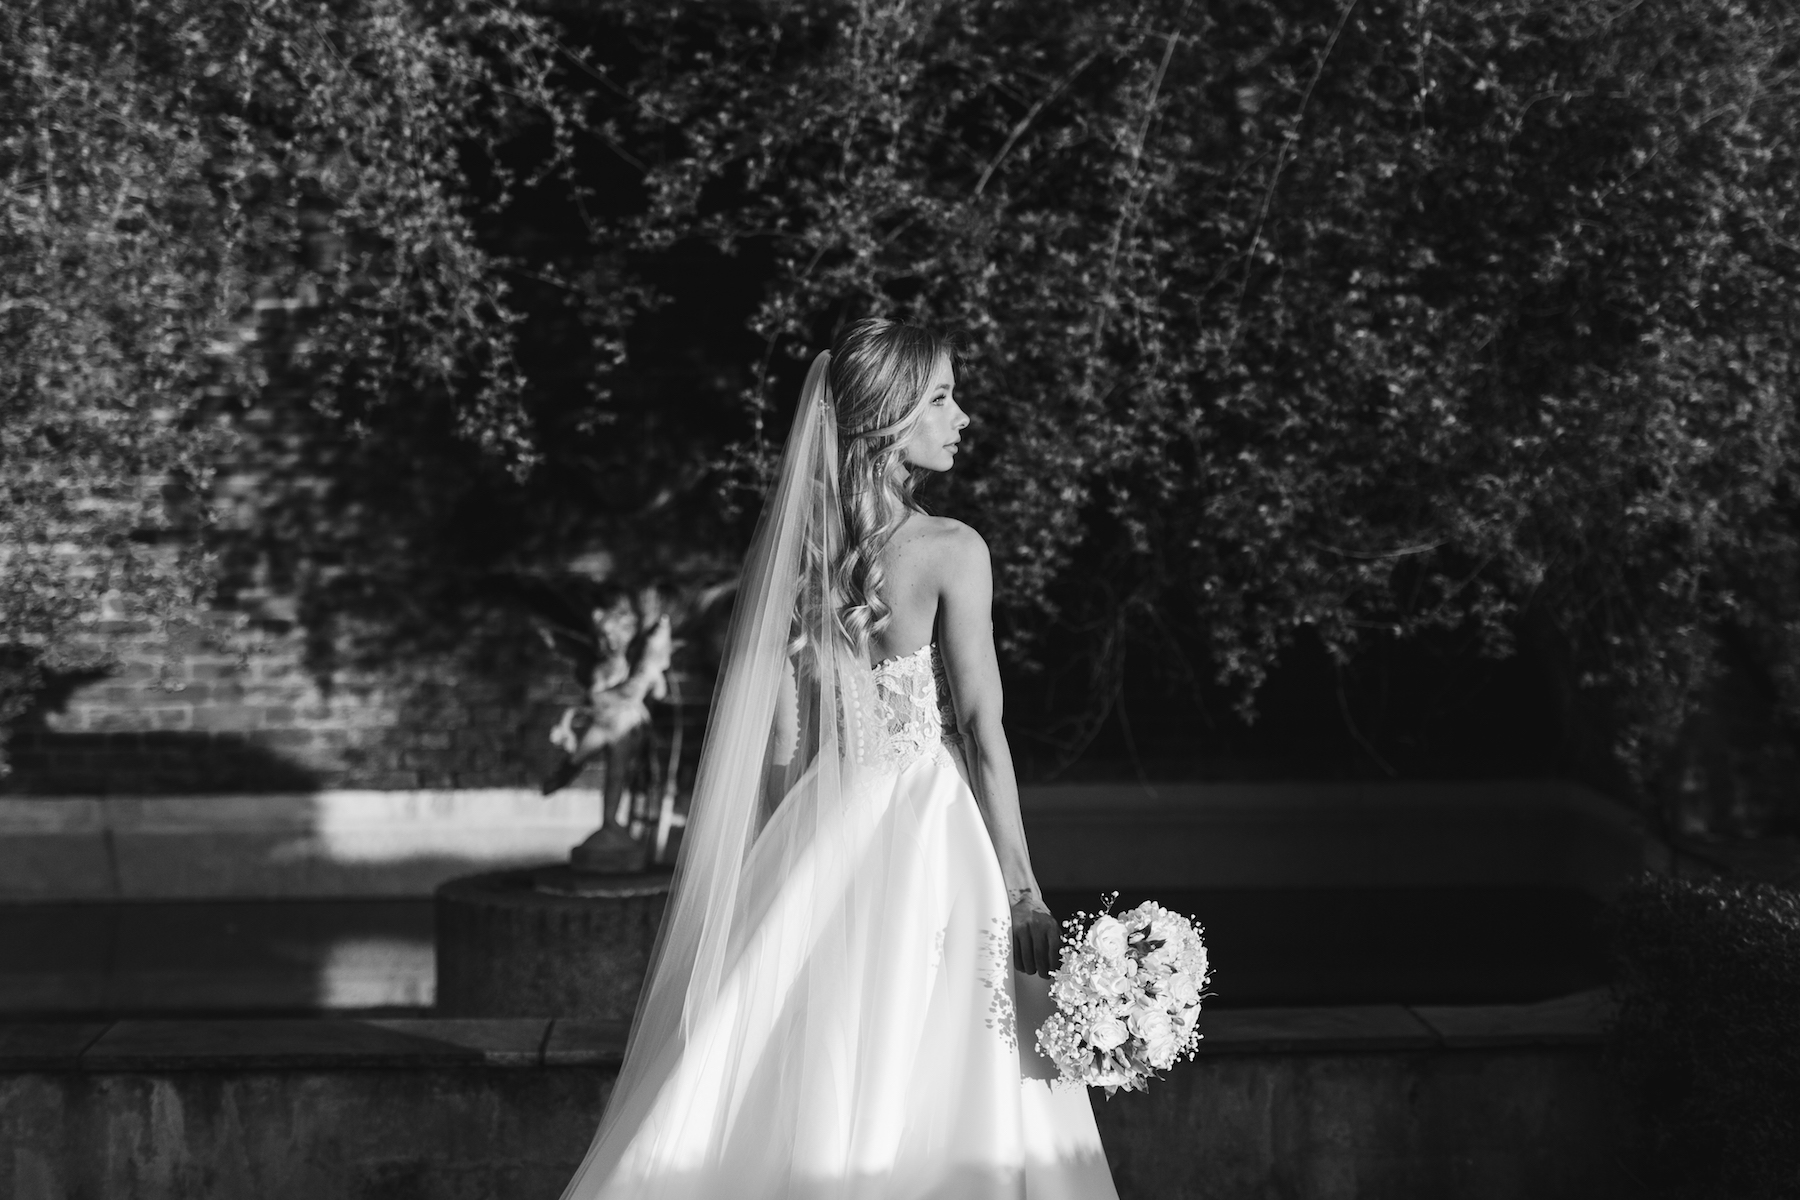 furman-university-bridals-paige-221.JPG